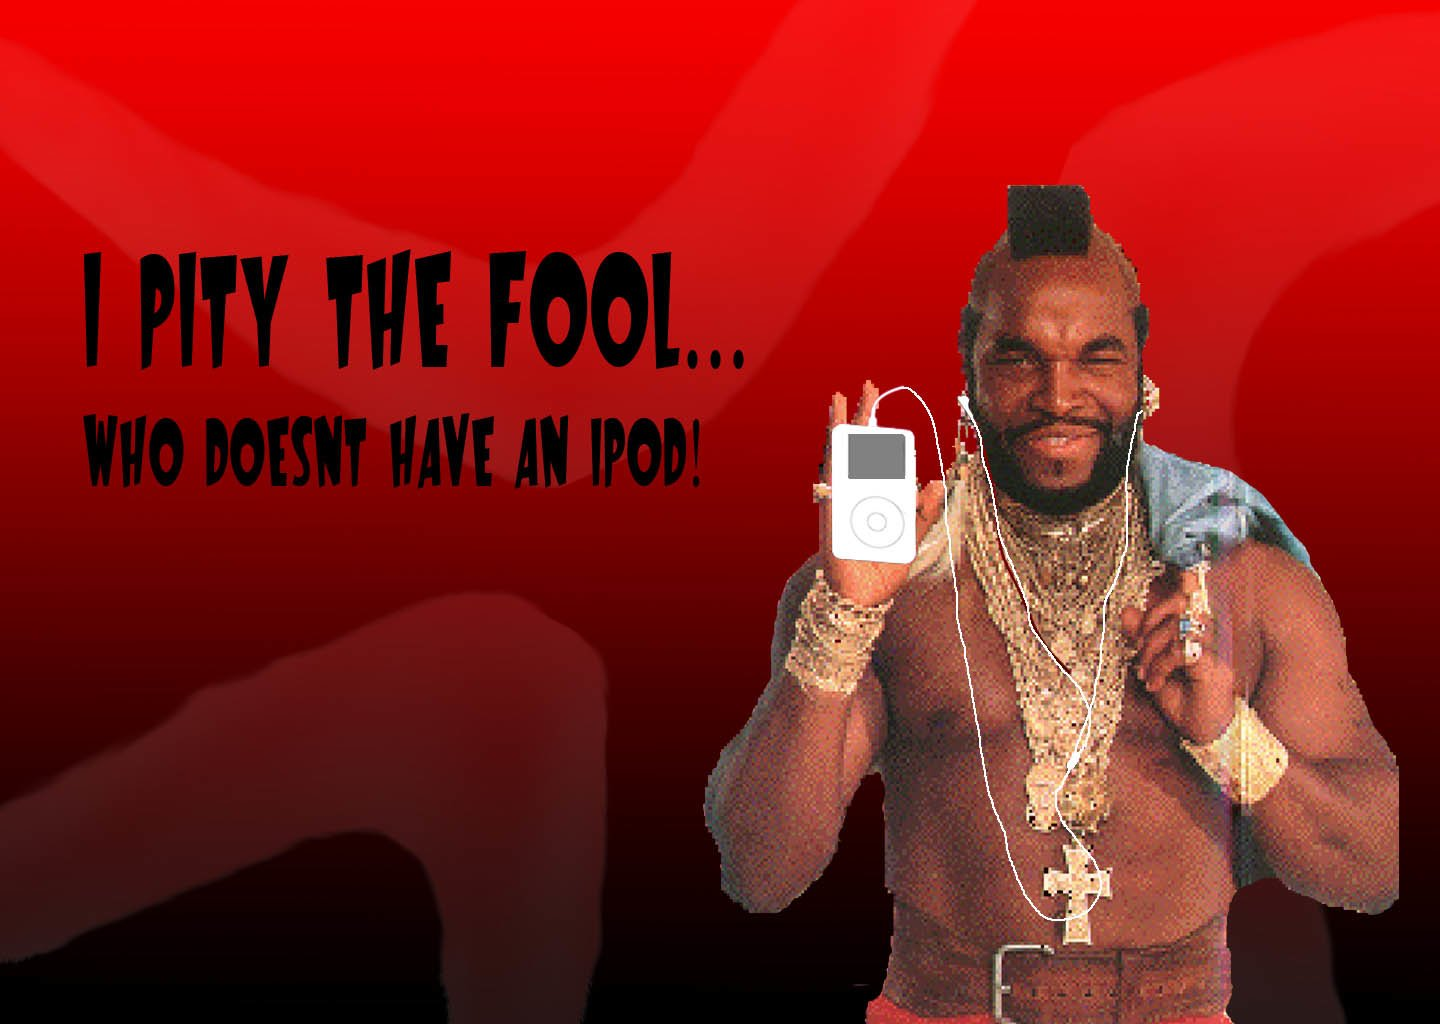 1440x1024 - Mr. T Wallpapers 10